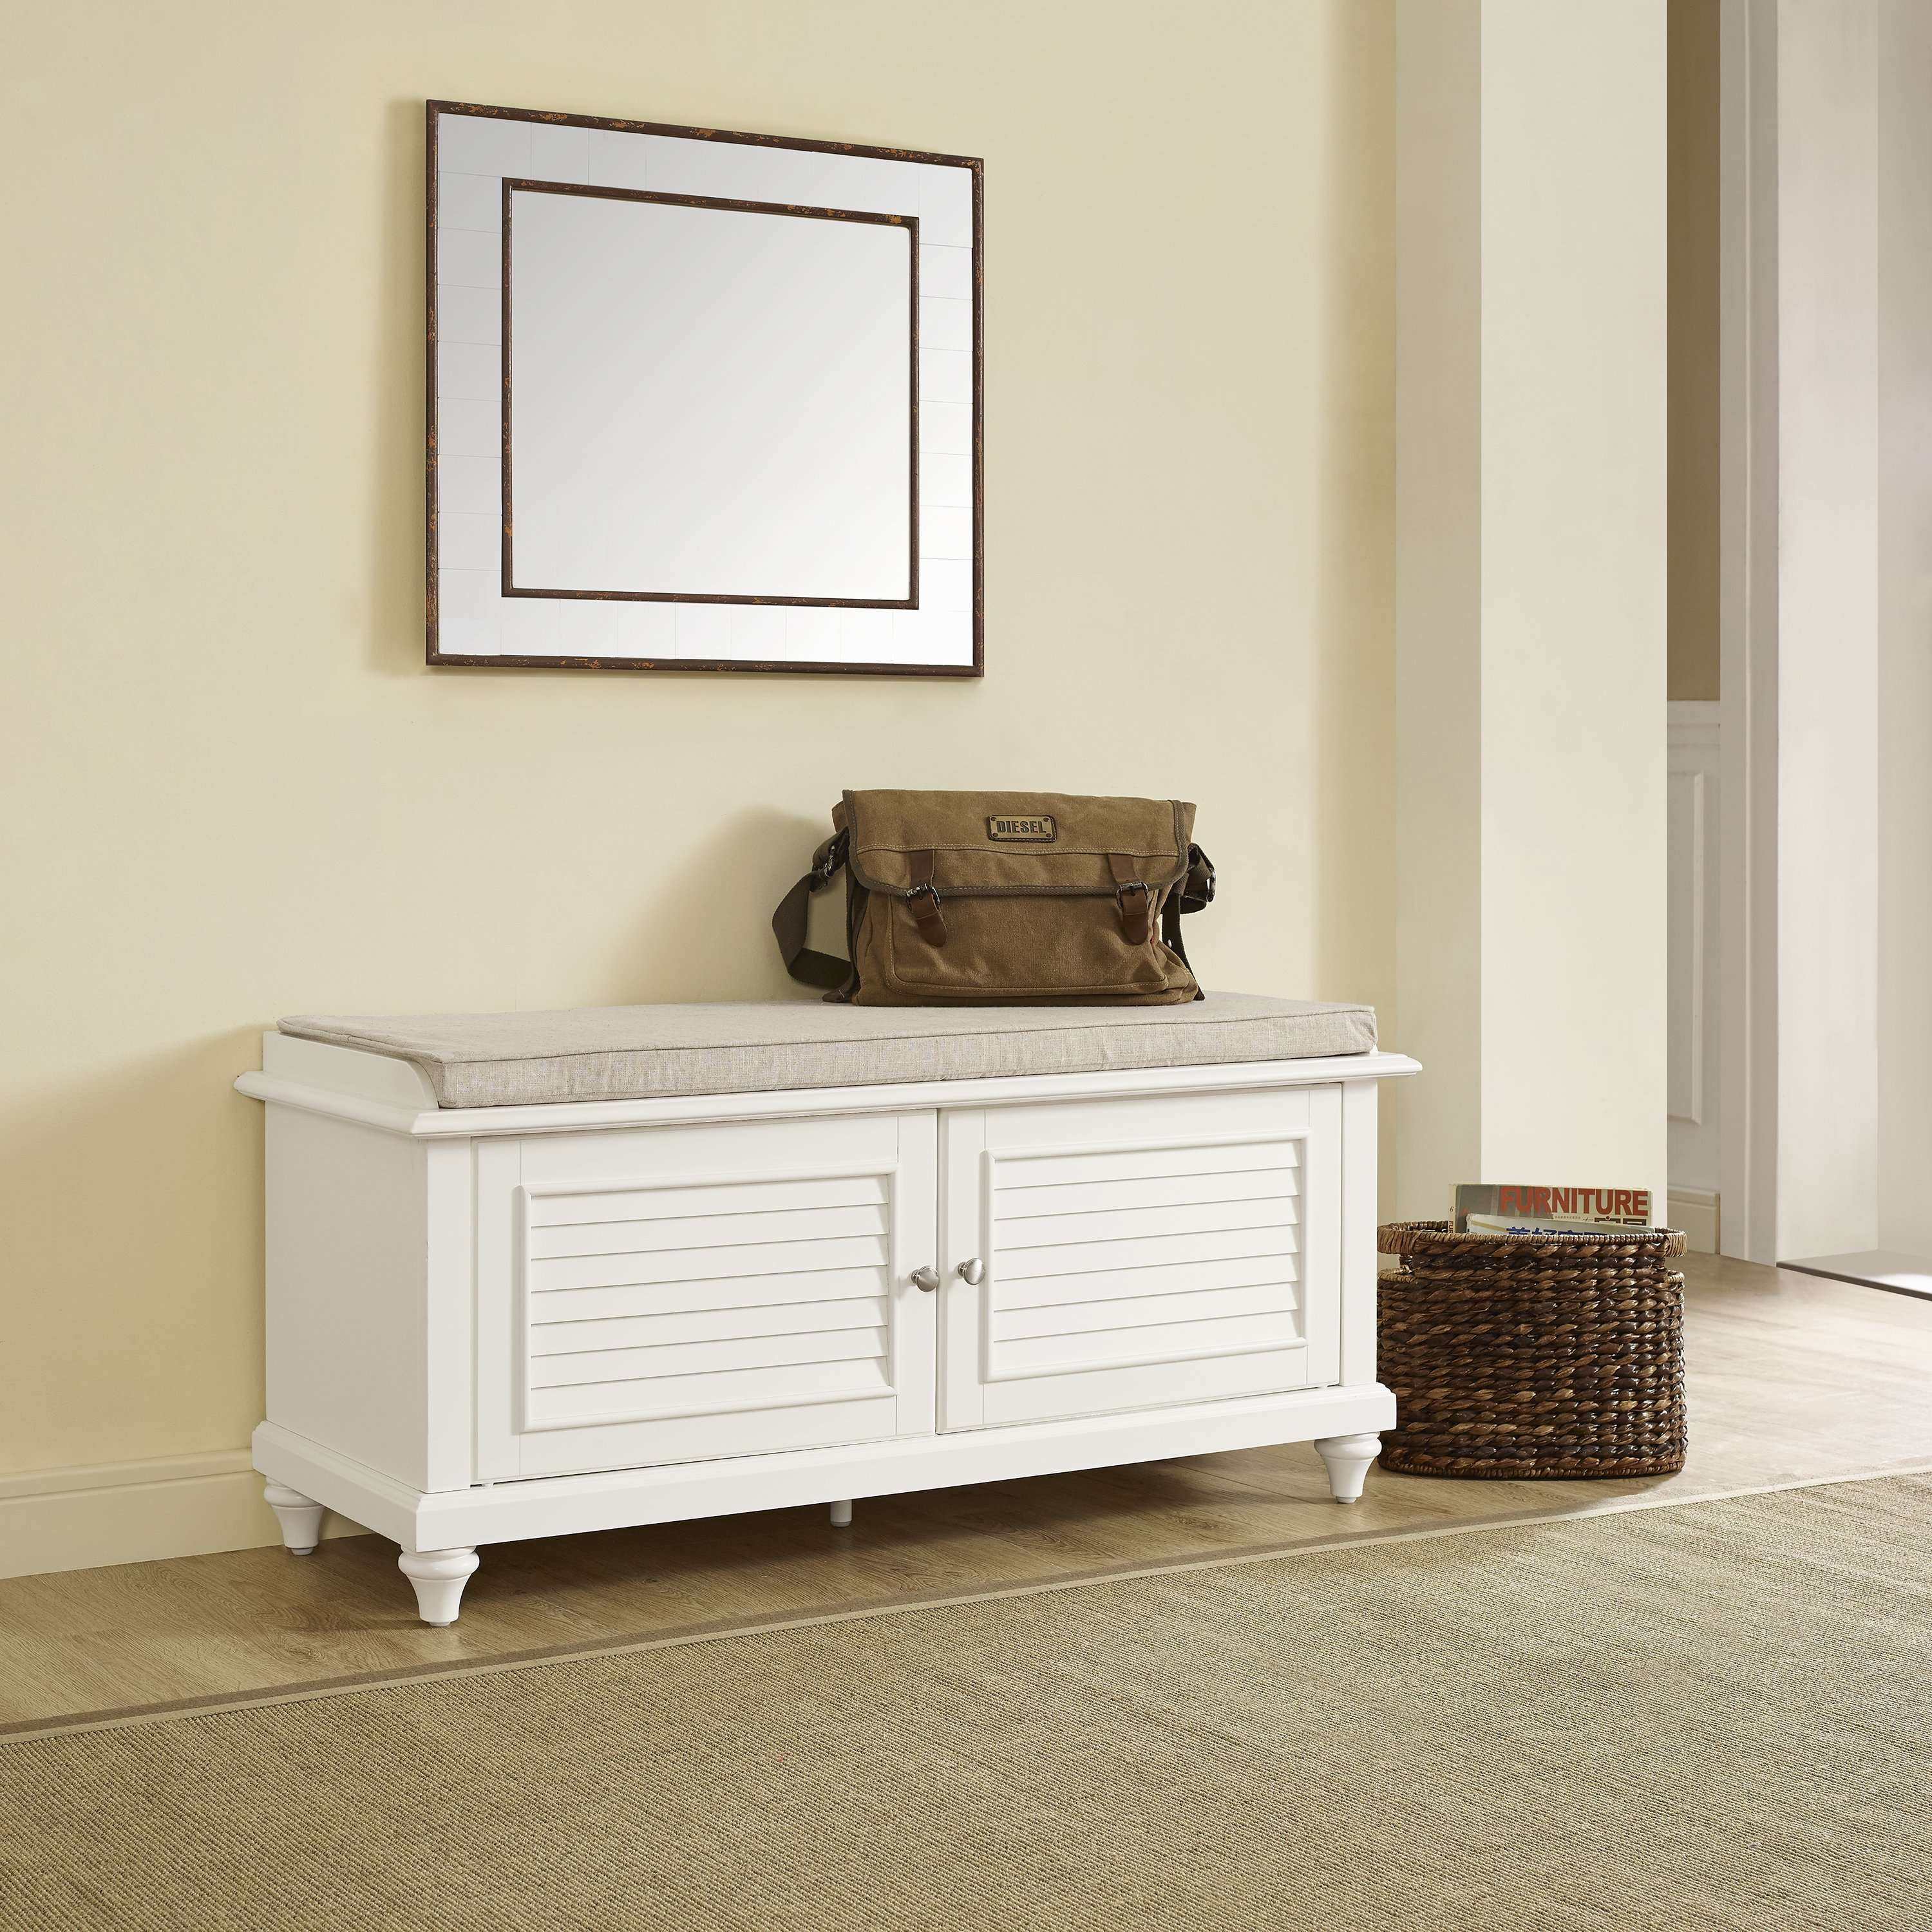 Palmetto white entryway bench